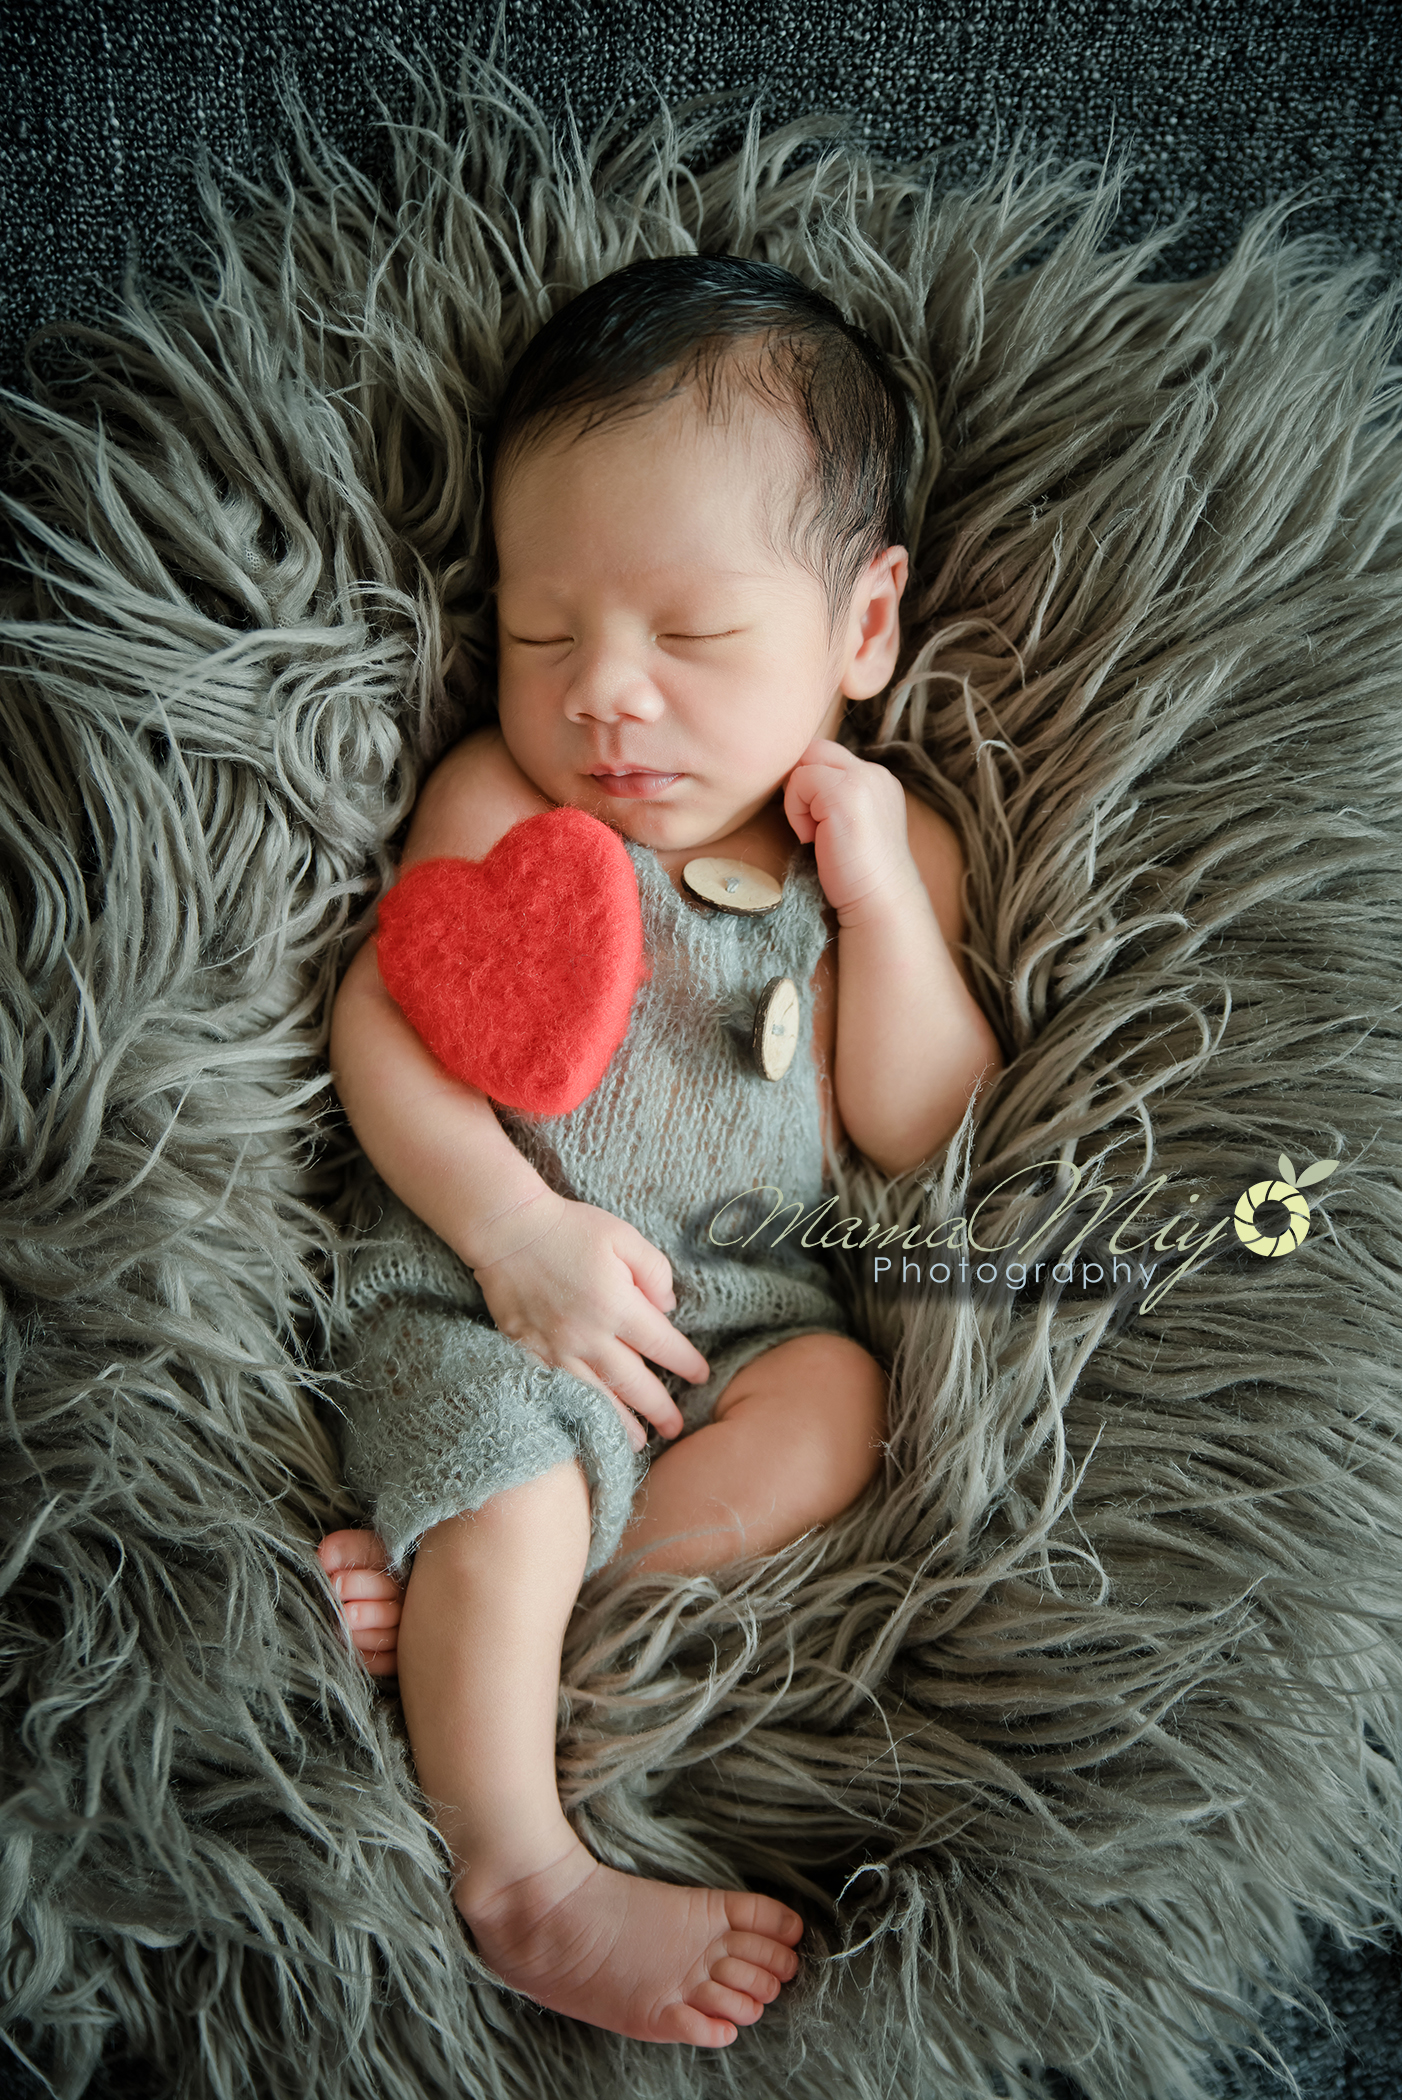 Newborn Studio Photography Singapore